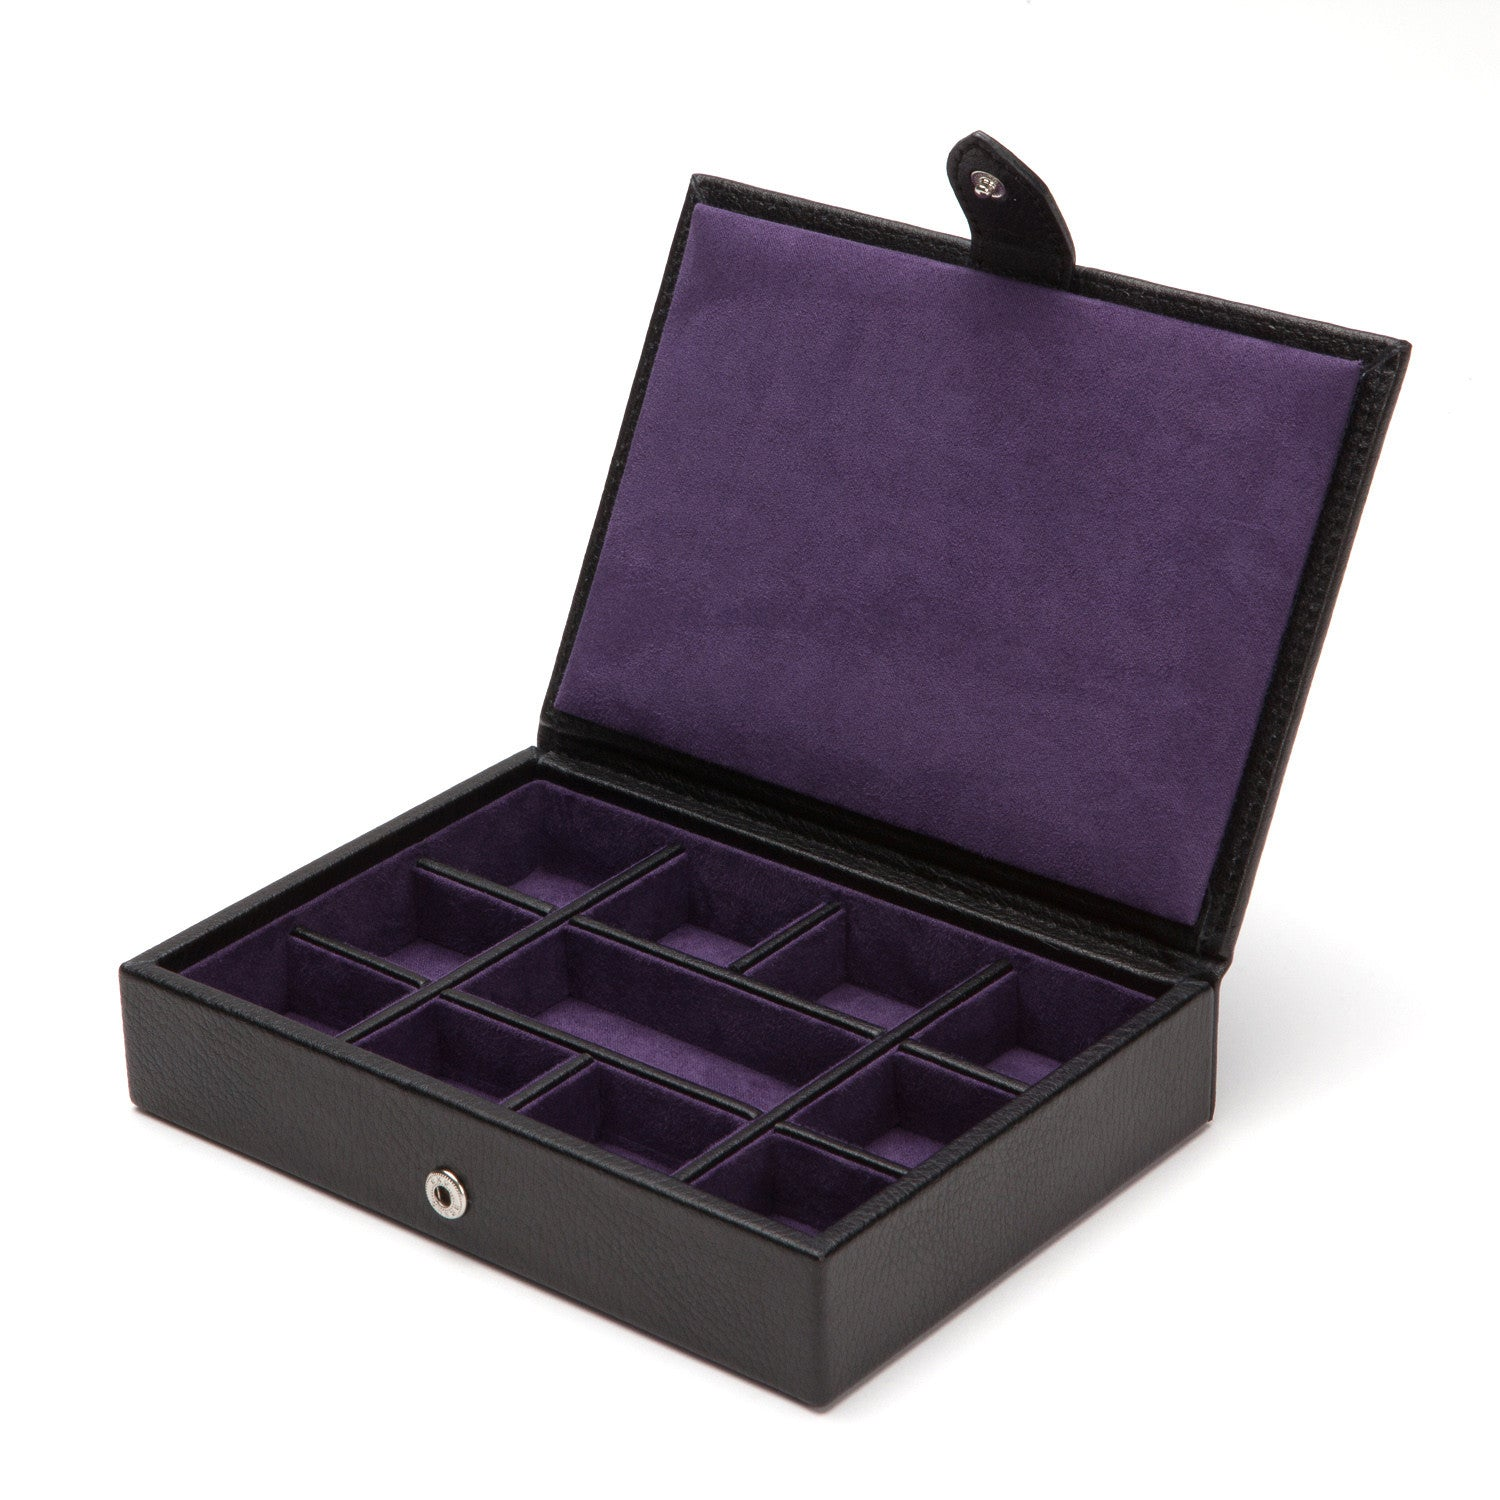 WOLF Blake Cufflink Box - Black Pebble by Burton Blake